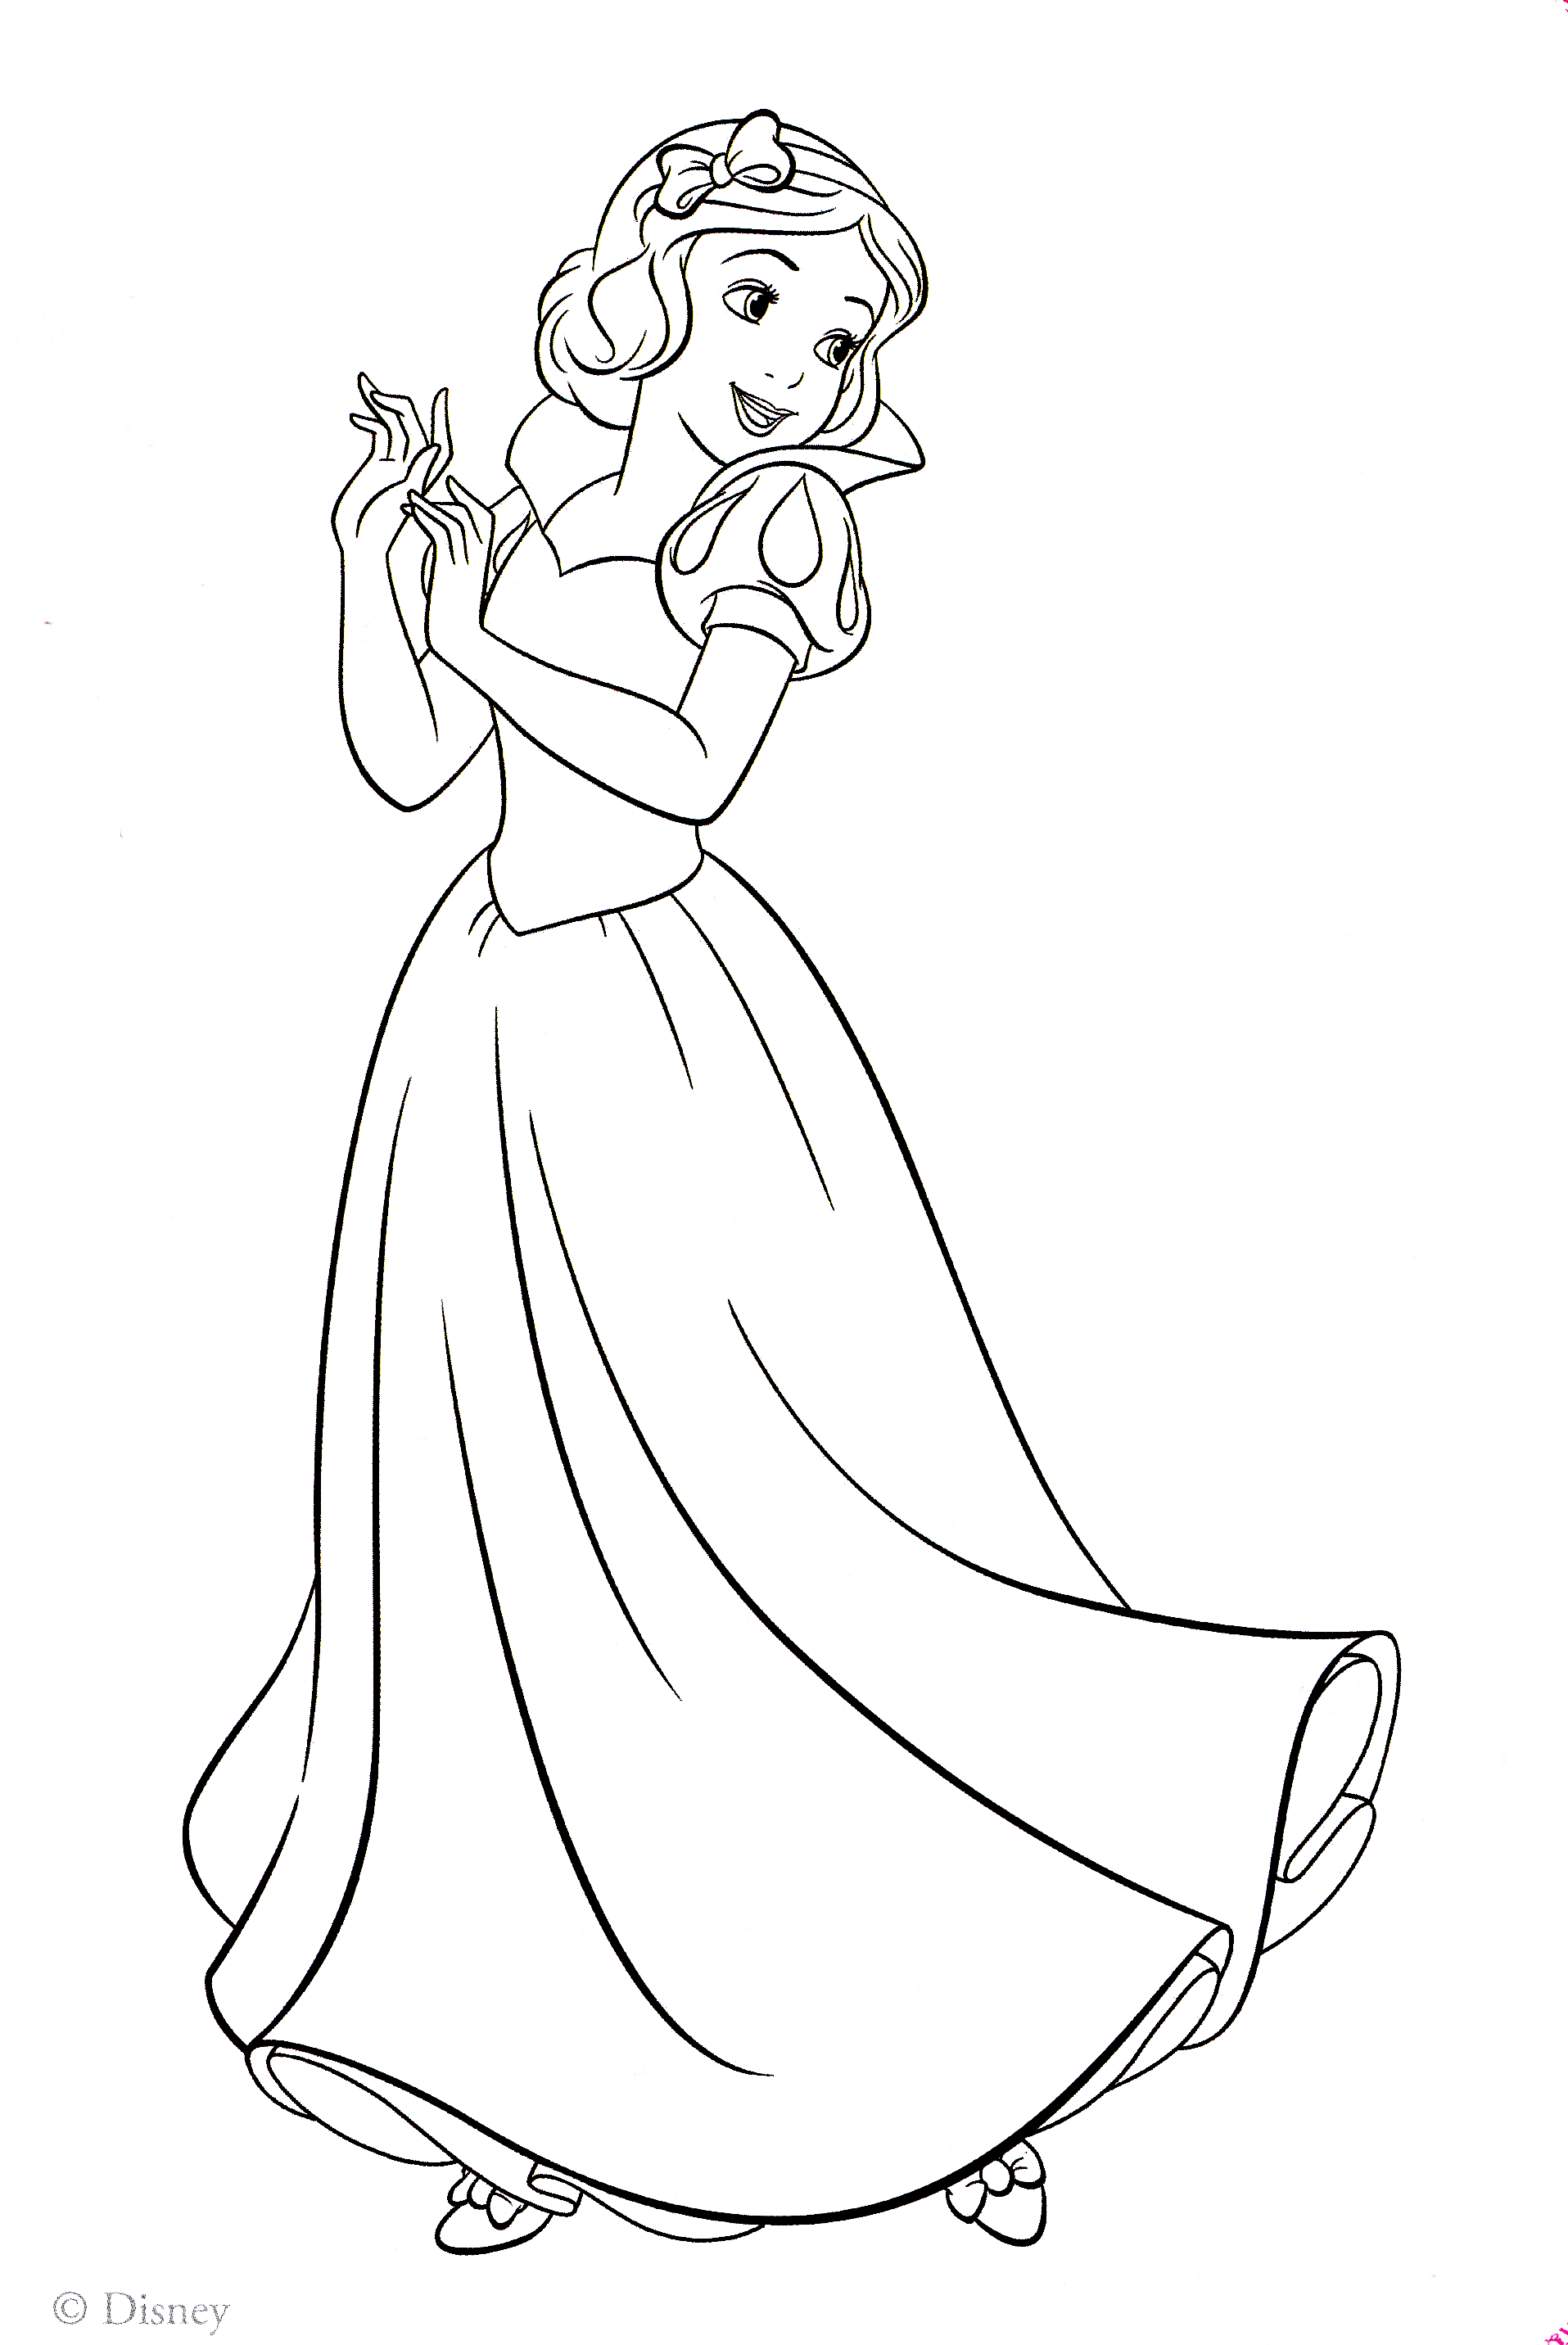 snow white for coloring snow white coloring pages coloring pages to download and snow coloring white for